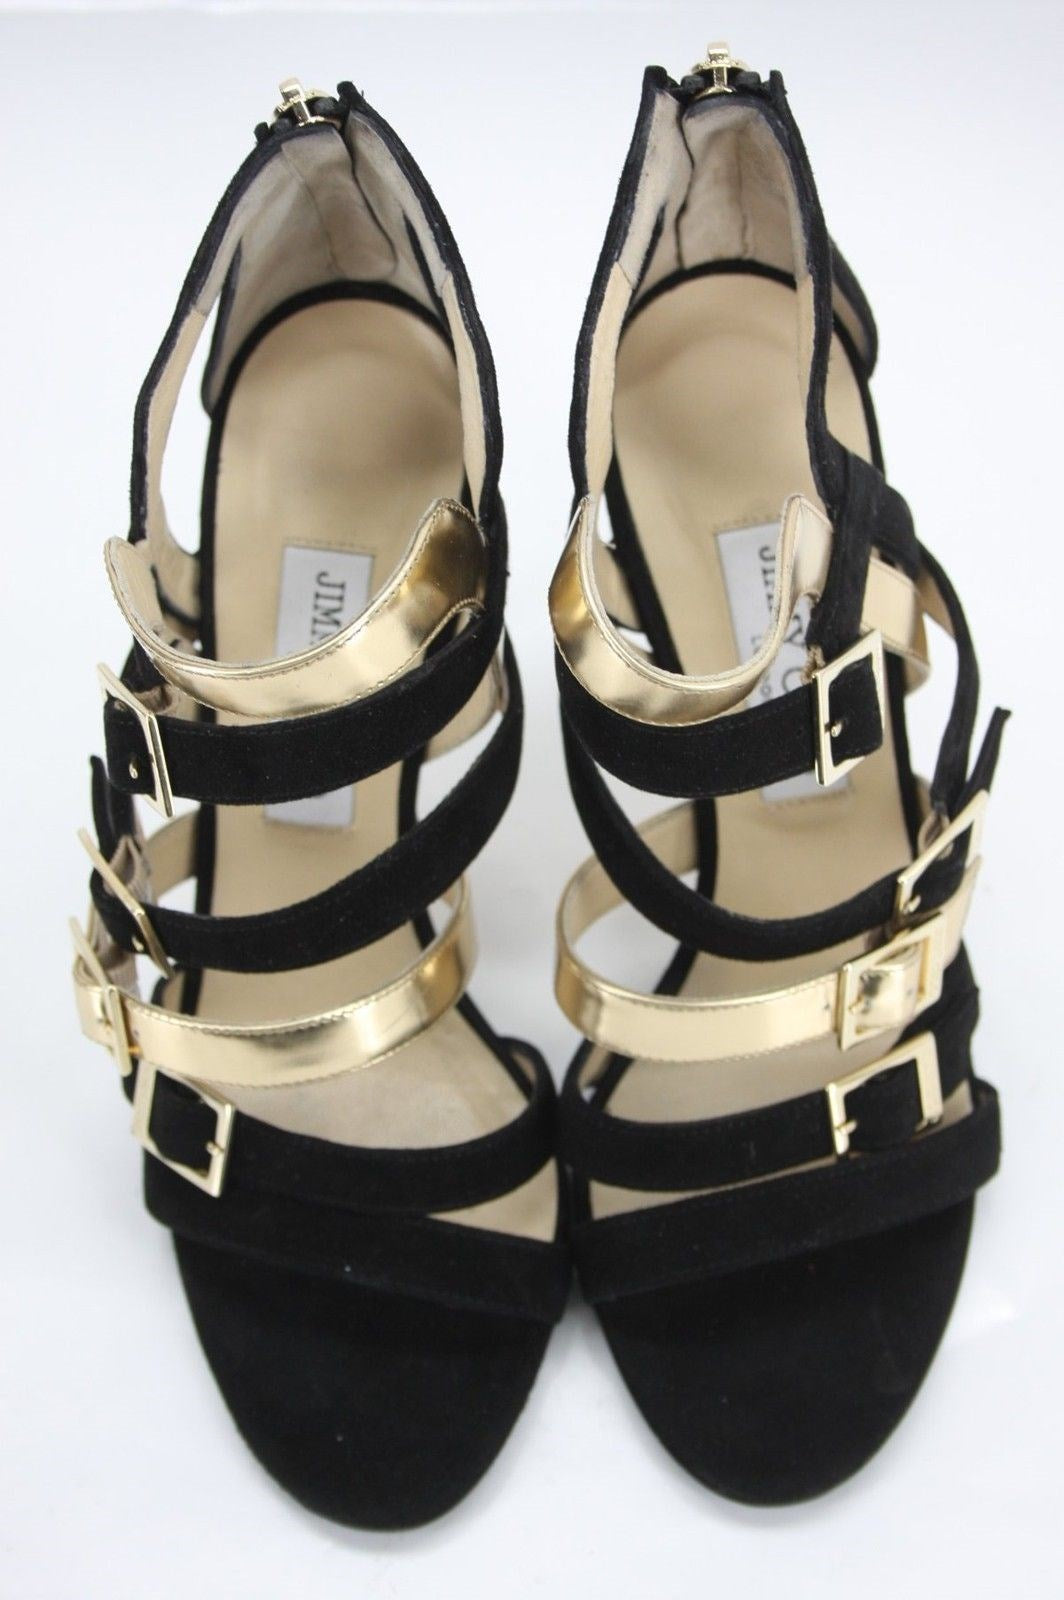 Jimmy Choo Bubble Bronx Leather Caged Strappy Sandals Size 39.5 New $925 Heels